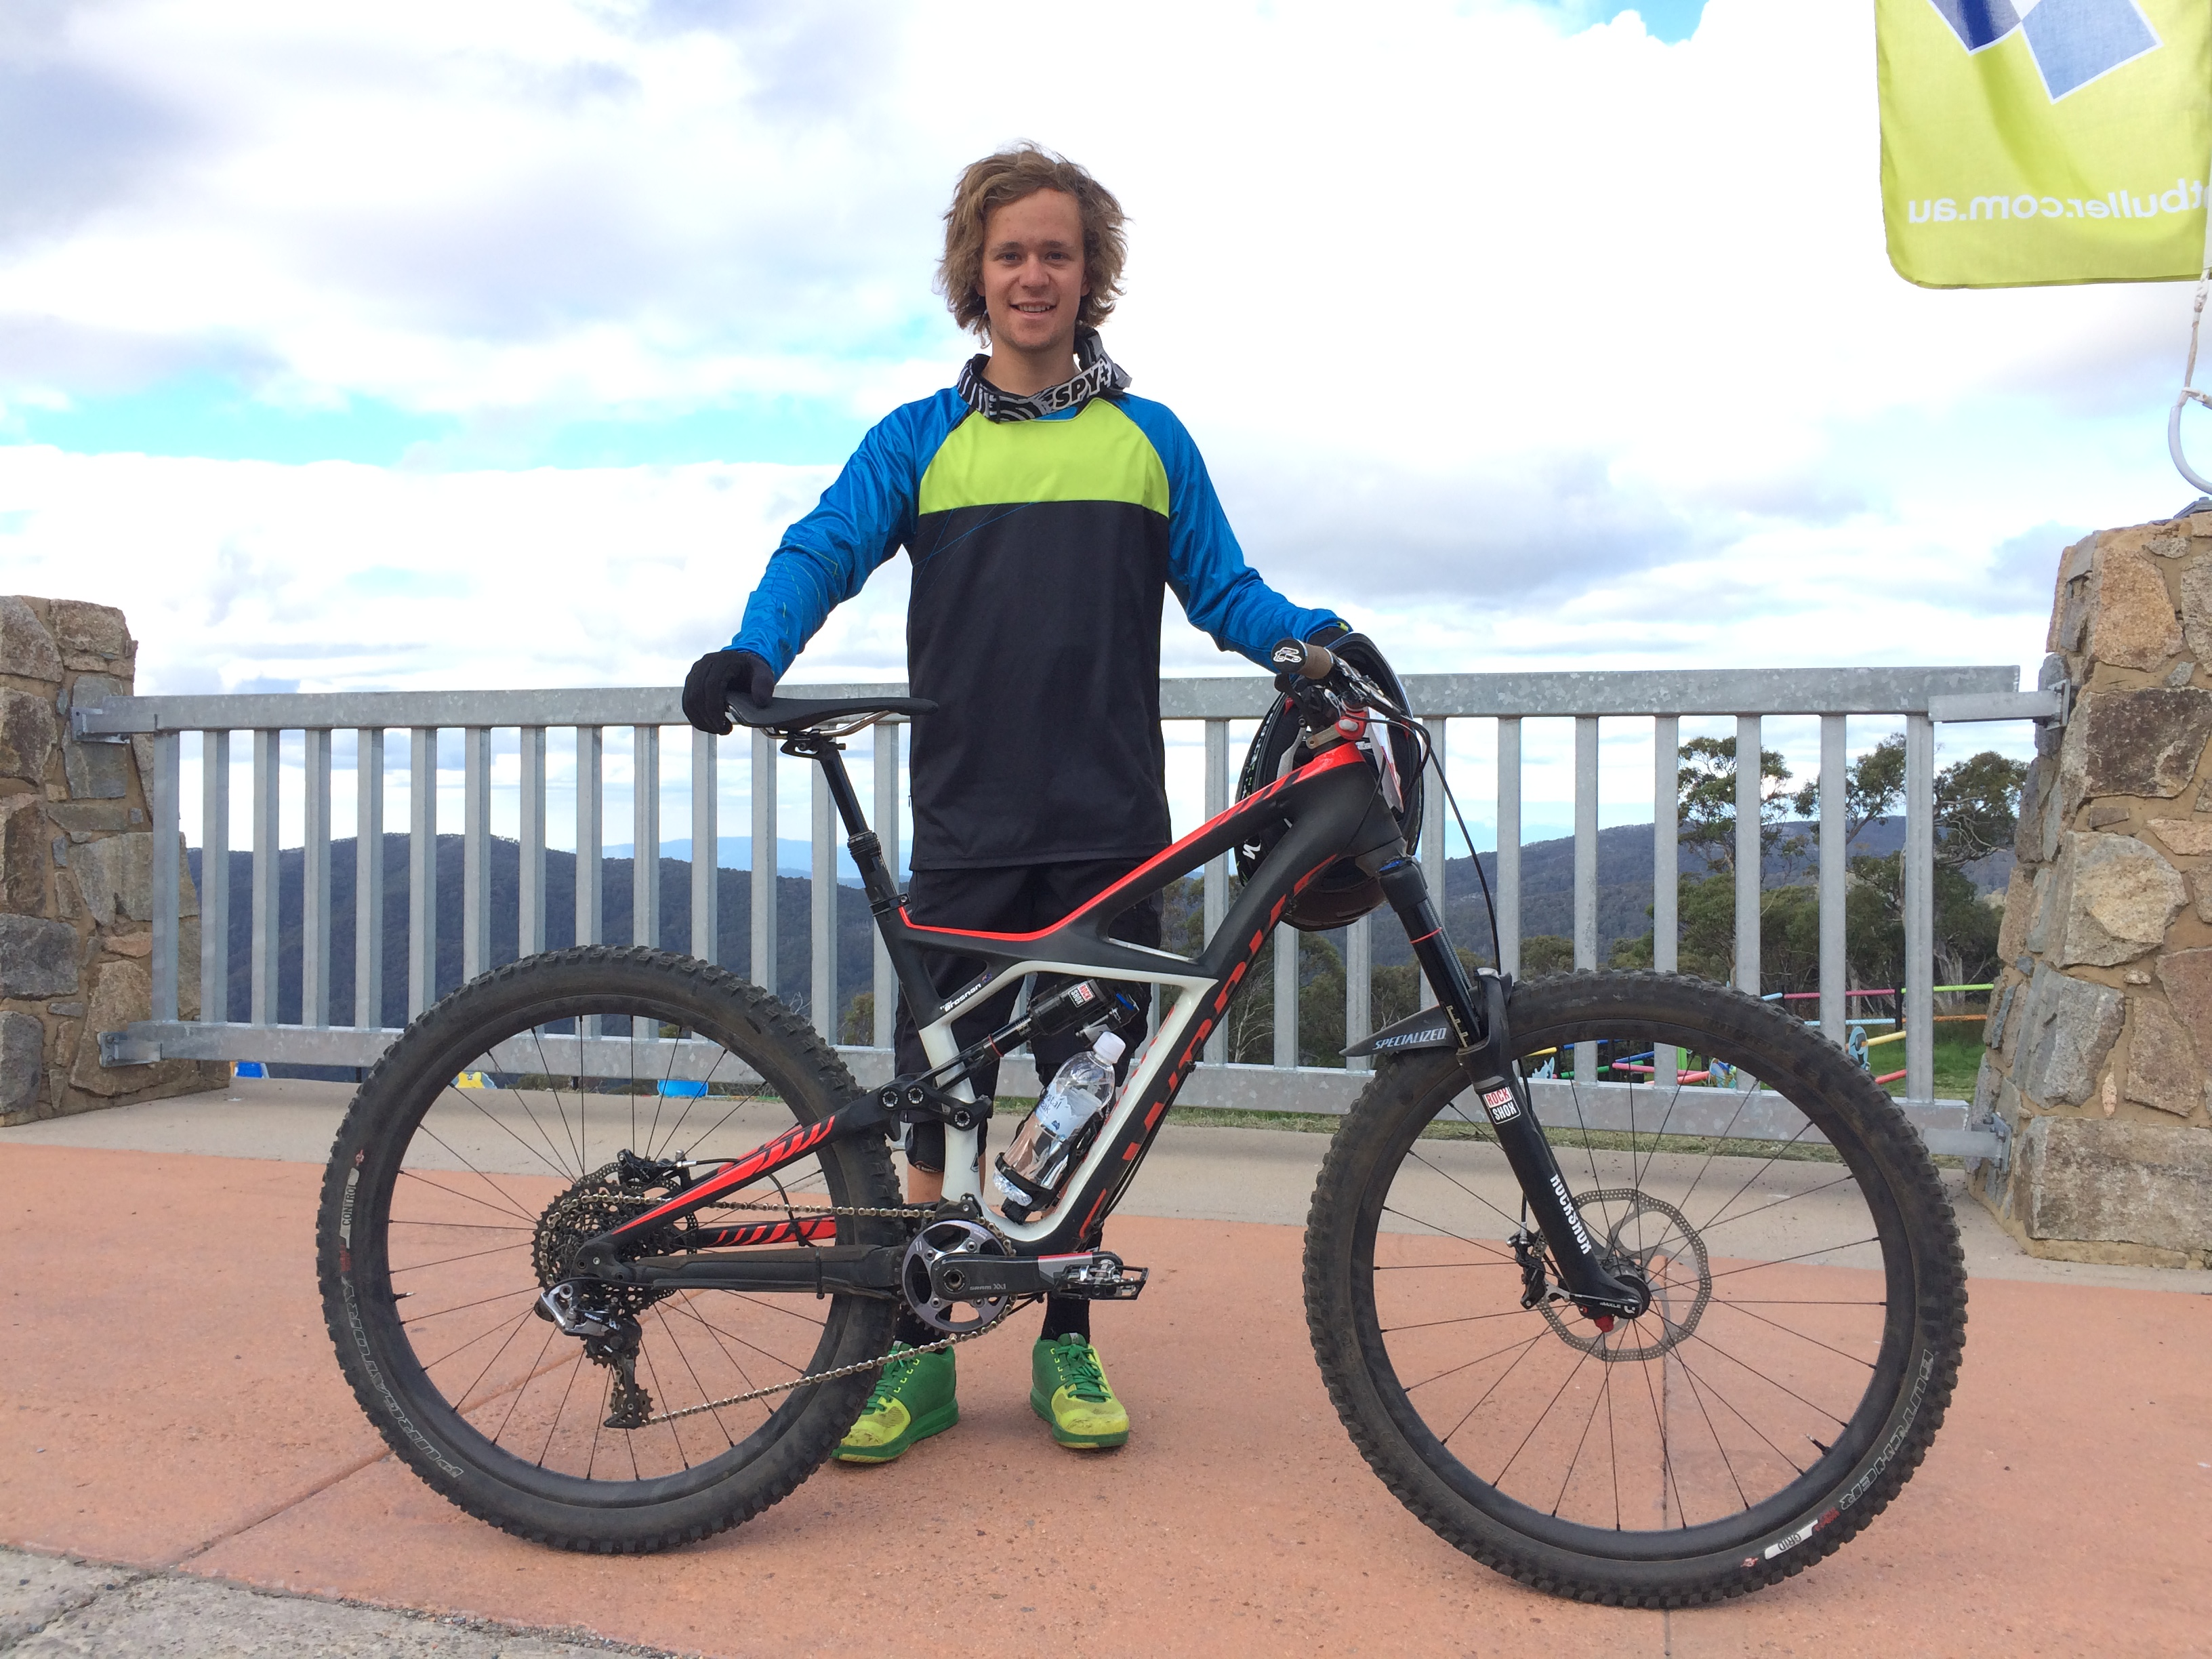 Enduro Bike Special - See what the pro's ride!